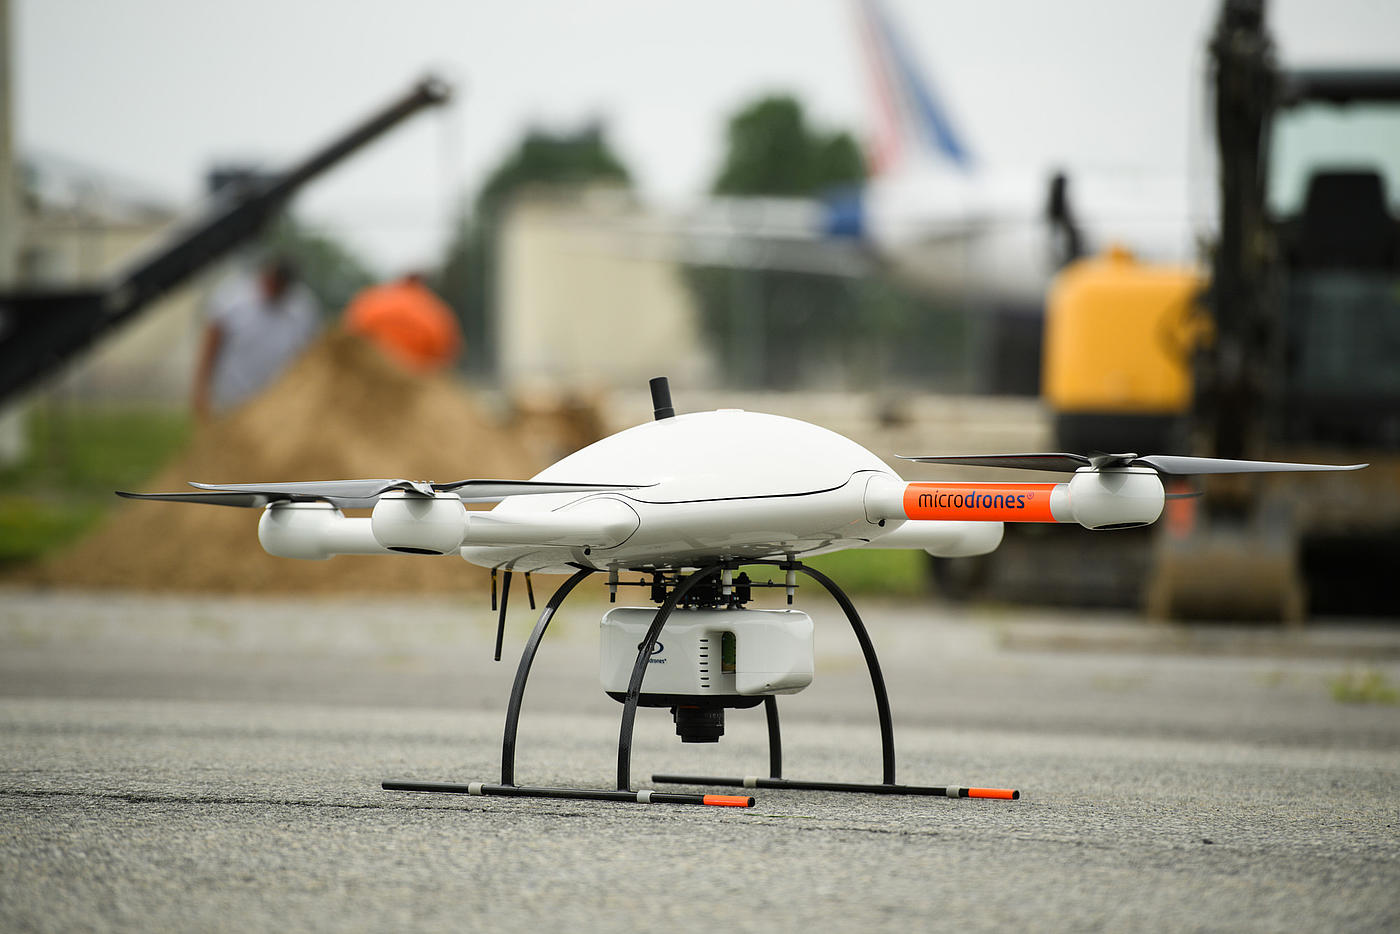 Microdrones Goes Big with Release of mdLiDAR3000, as well as Two New